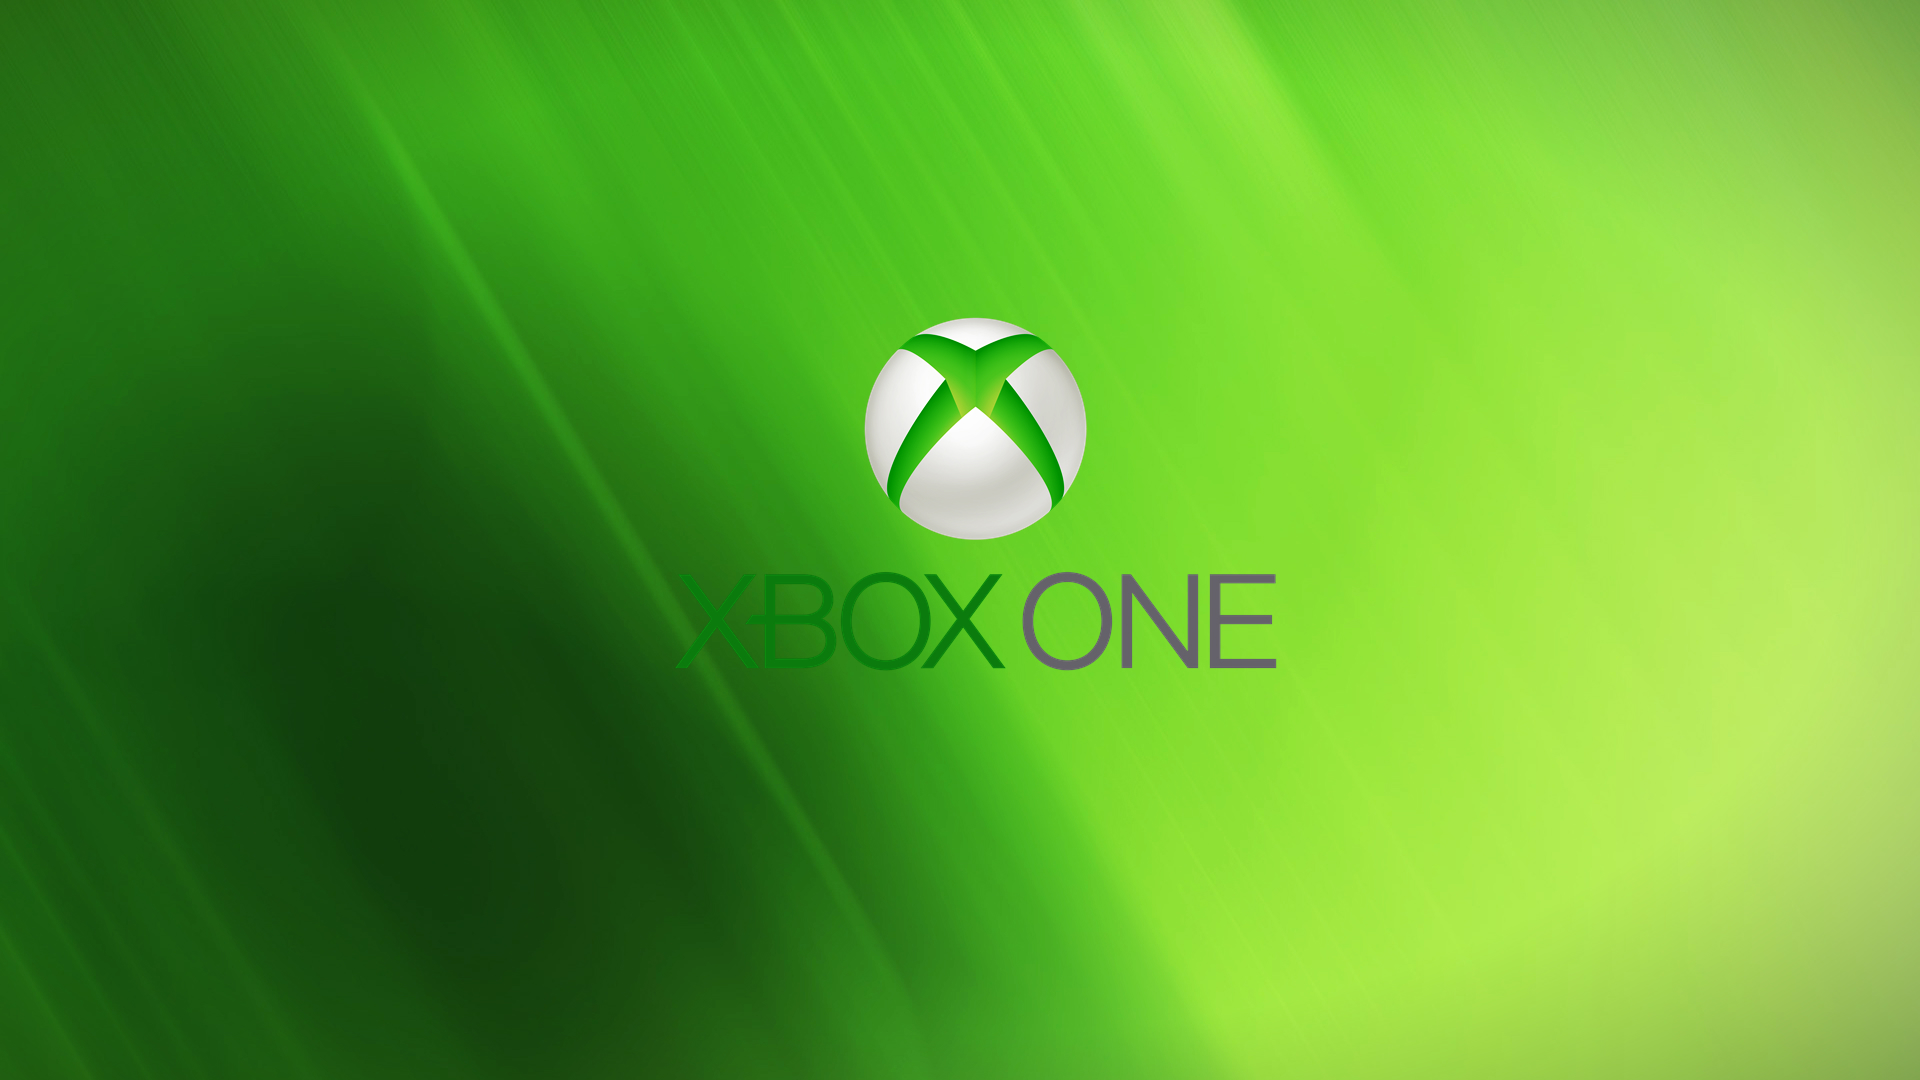 Xbox One X is the world's most powerful gaming console, with 40% more power than any other console and 6 teraflops of graphical processing power for an immersive true 4K gaming manualaustinnk4.gq perform better than ever with the speed of 12GB graphics memory. A built-in 4K Blu-ray player delivers stunning clarity for movies and gaming, and for streaming 4K video on Netflix, Amazon, Hulu, and more.